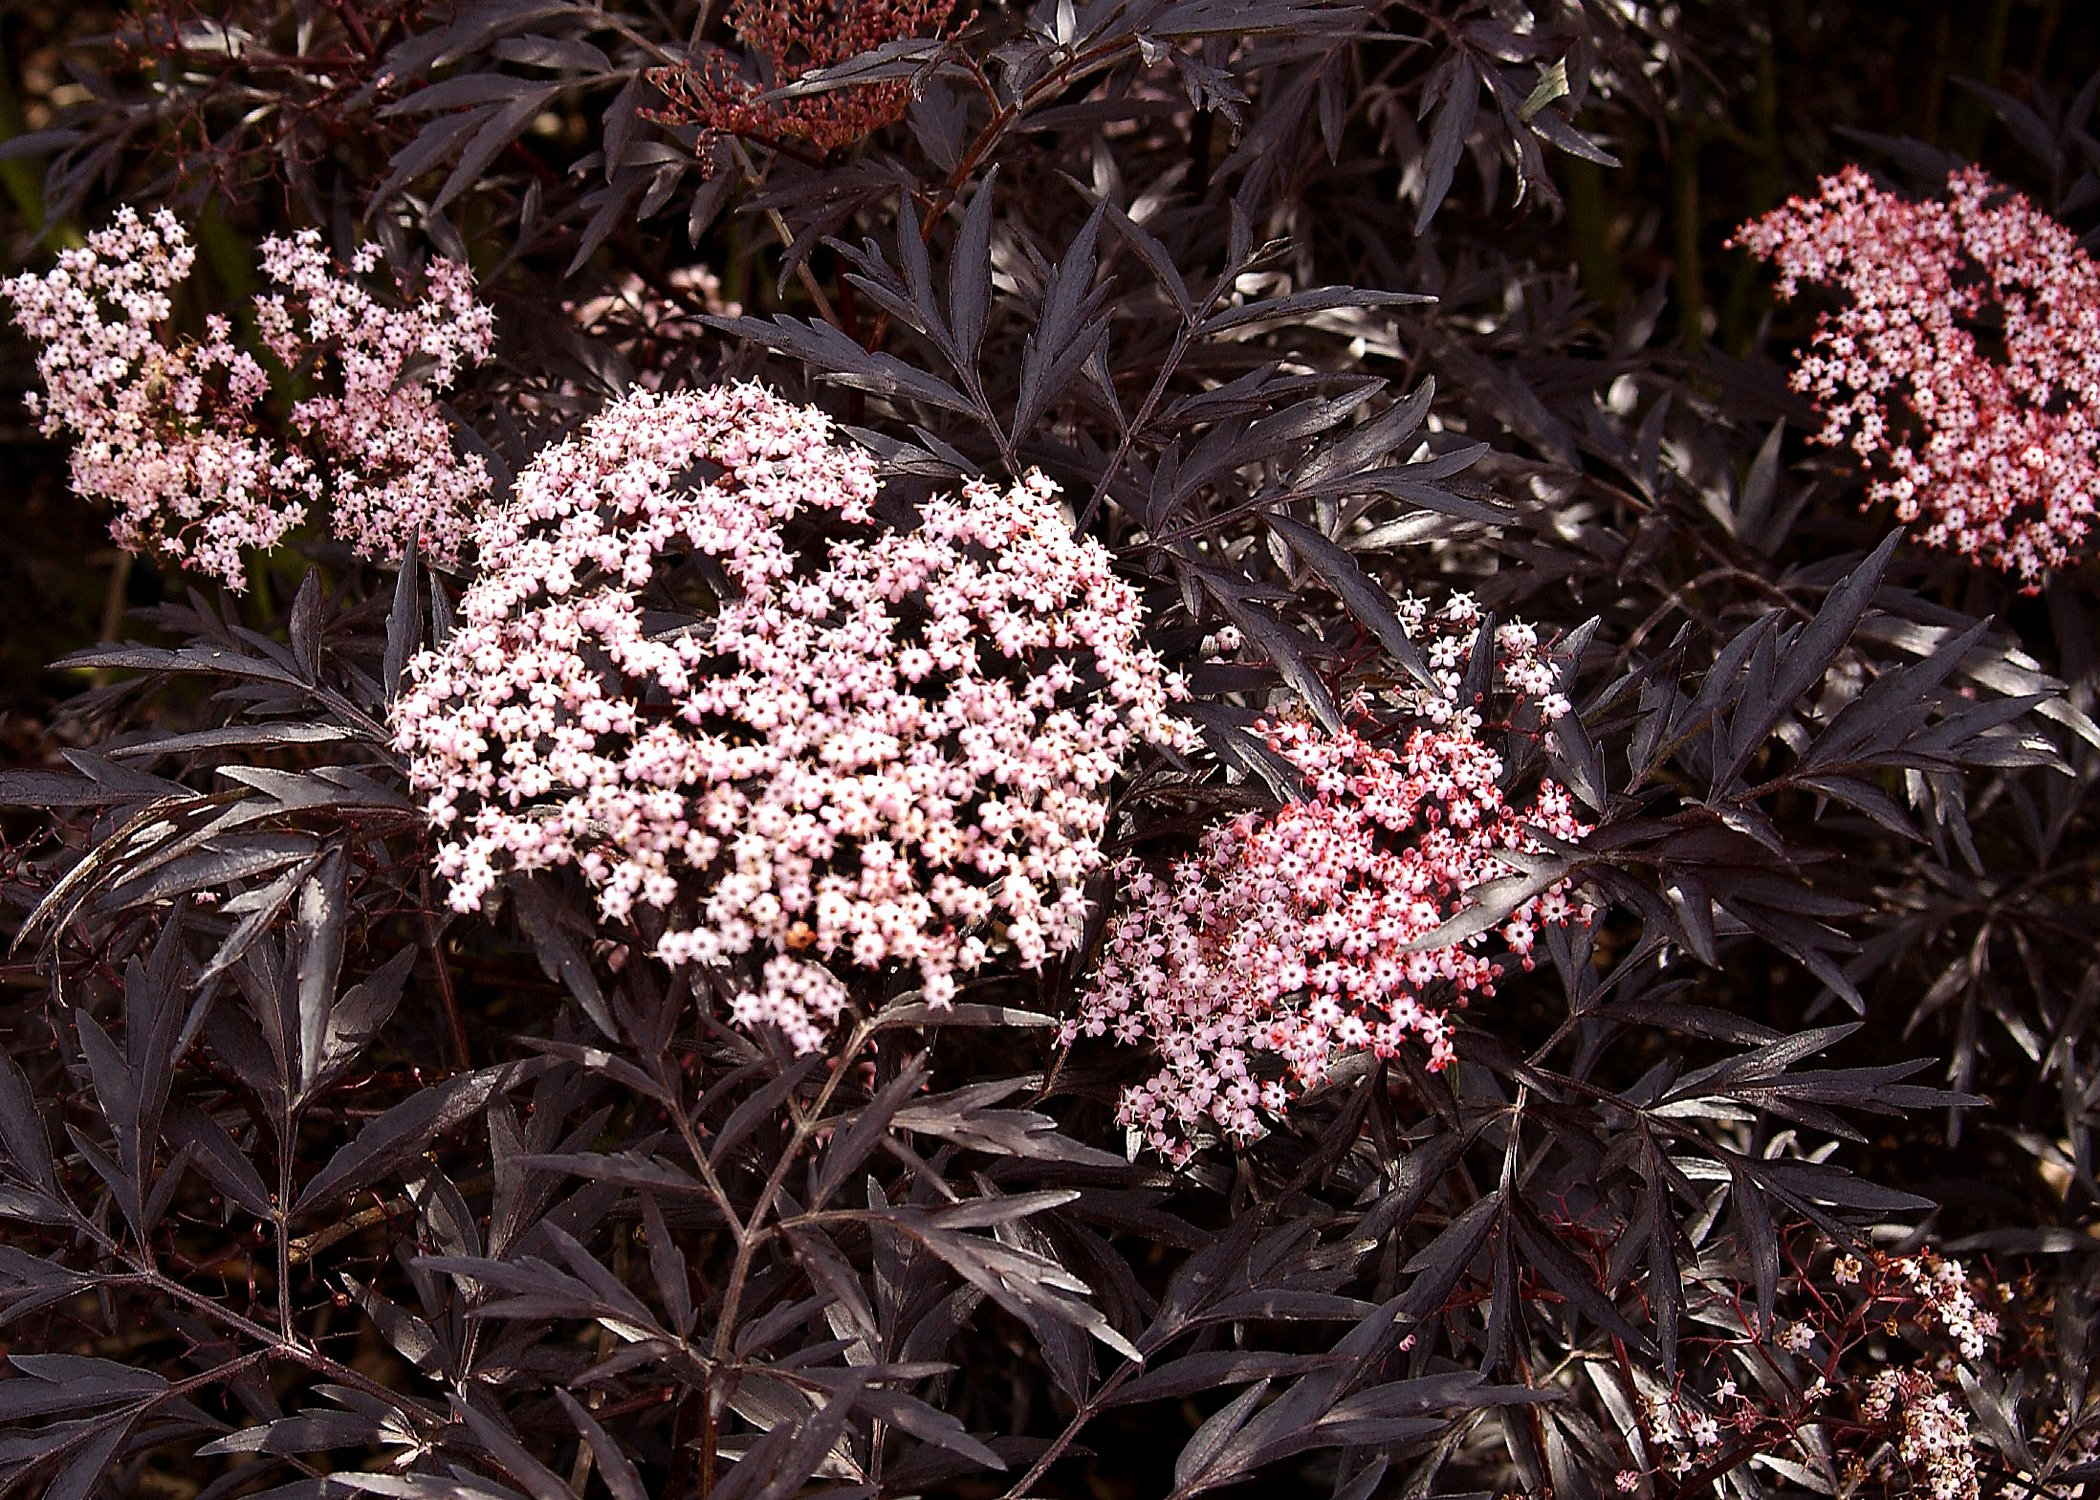 Black Lace Elderberry (Sambucus) Live Shrub, Pink Flowers, 4.5 in. Quart by Proven Winners (Image #2)